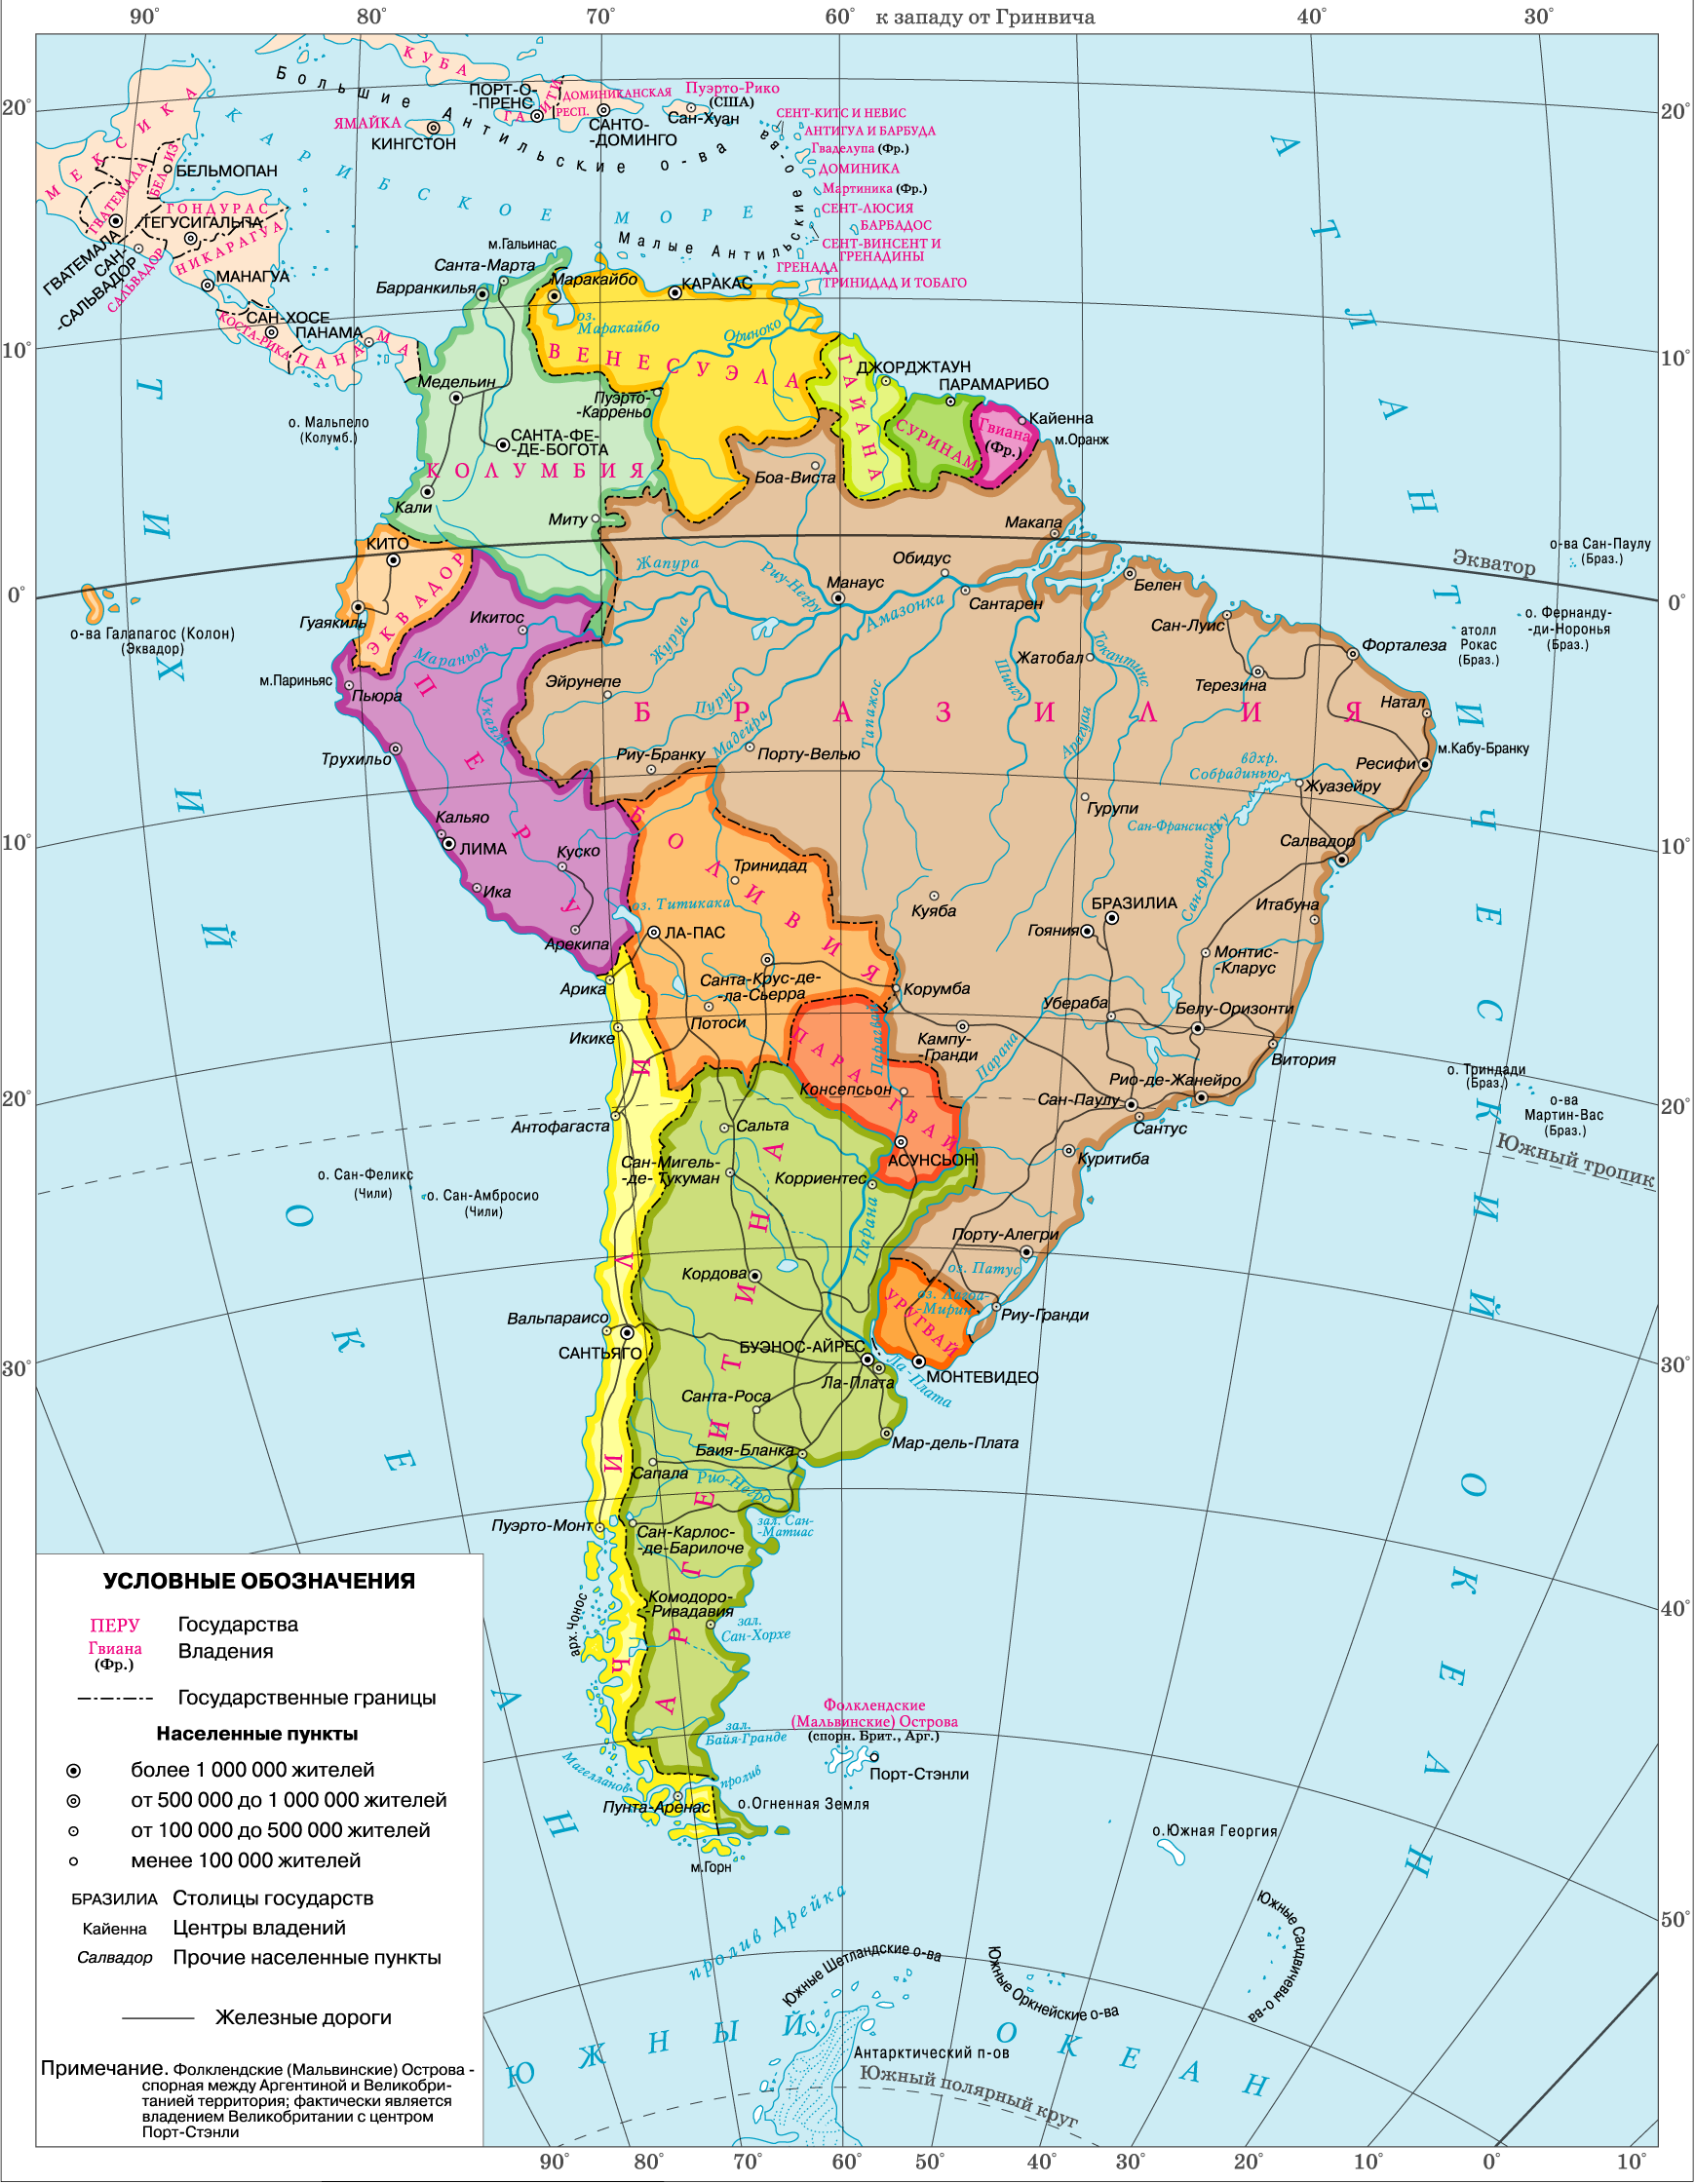 spanish speaking countries on map with Karta Yuzhnoj Ameriki on America Latina together with Overvw01 likewise Map Of Ohio furthermore Discovery Of The Brazil furthermore Best English Speaking Countries Africa According New Research.